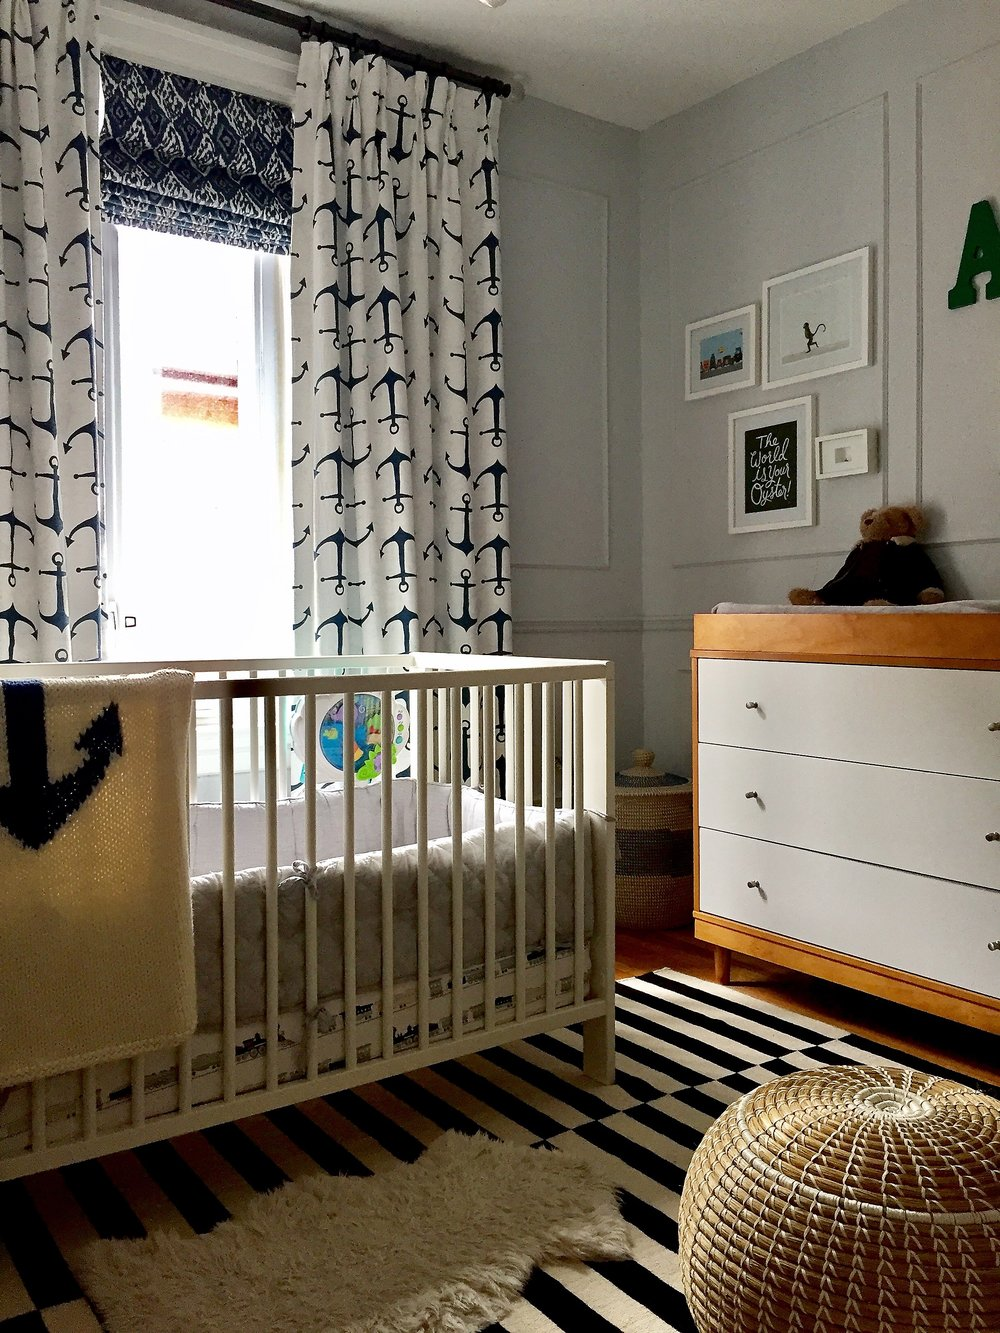 3 Foolproof Tips For Decorating Kids Rooms (itu0027s Not That Scary!)